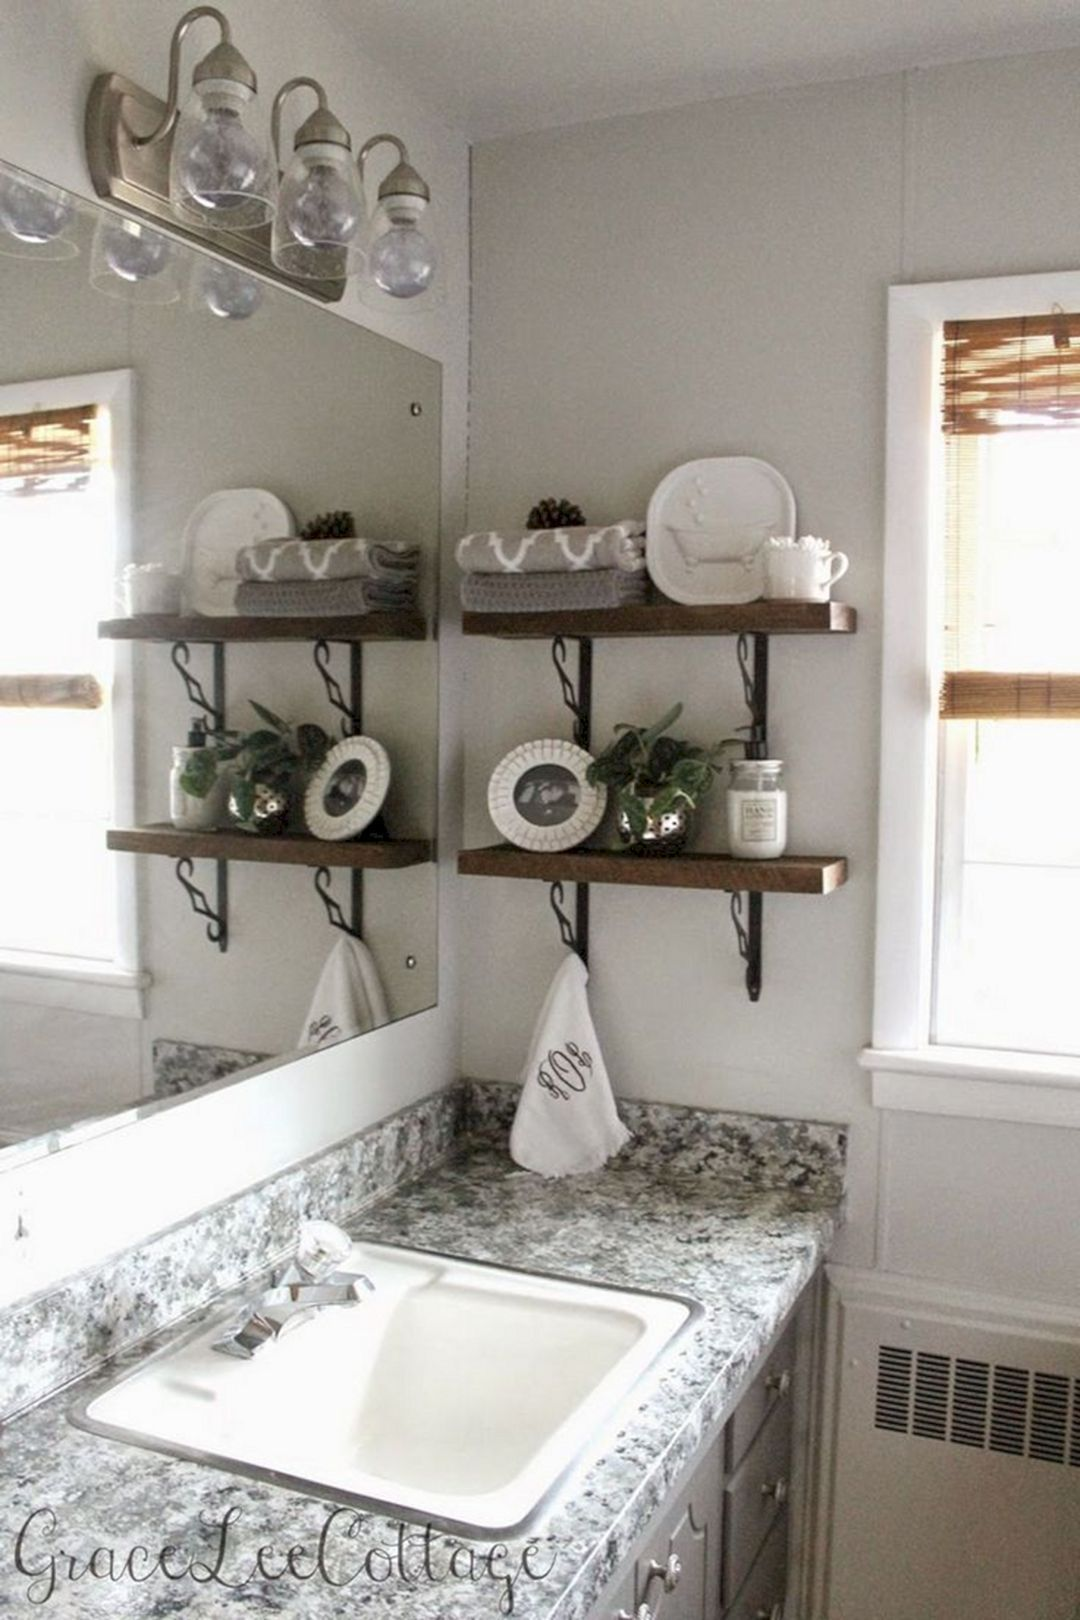 20 DIY Floating Shelves and Bathroom Update (With images